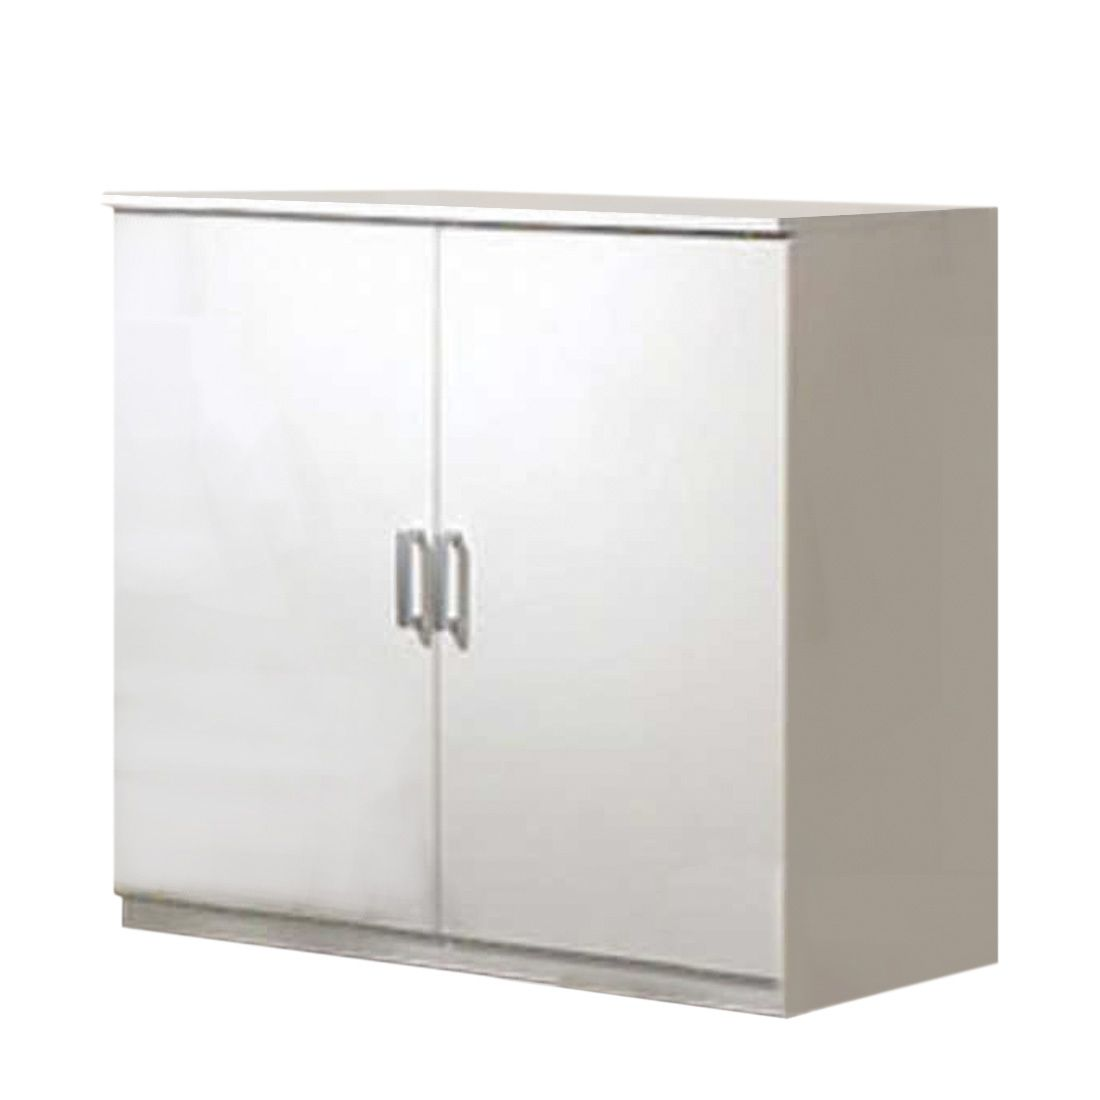 Commode Quadra III - Blanc alpin, Rauch